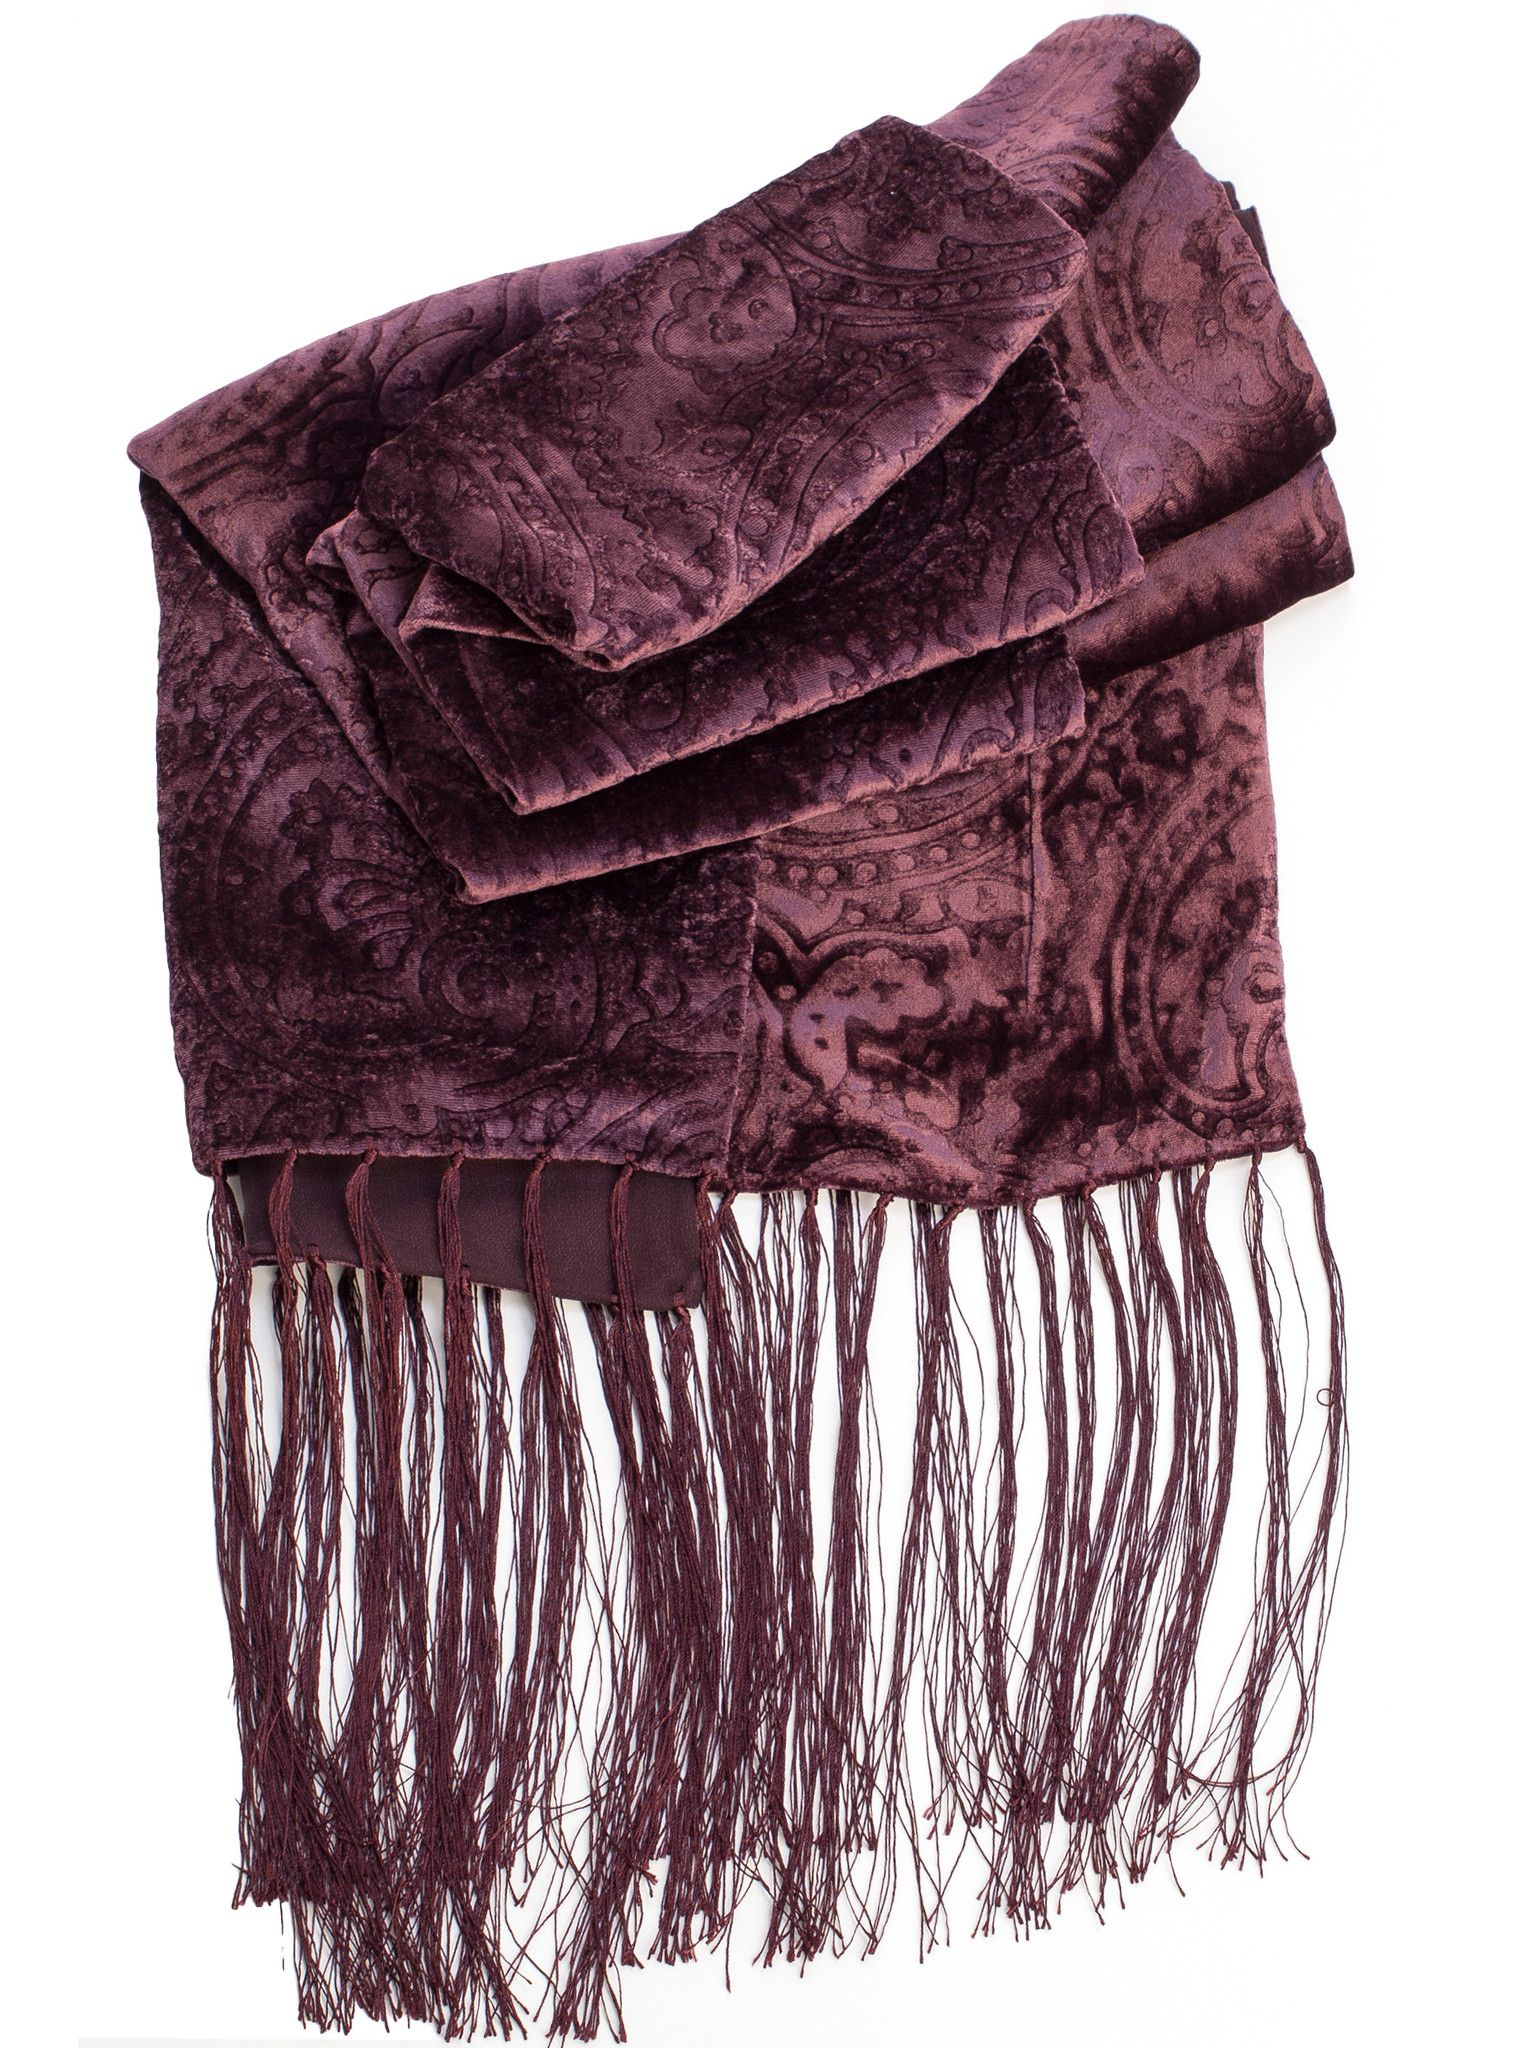 Lined with silk crepe Georgette and finished with a hand knotted fringe, this gorgeous embossed silk velvet evening wrap is sure to turn heads! Pure luxury from Italy. Details - Made in Como, Italy -